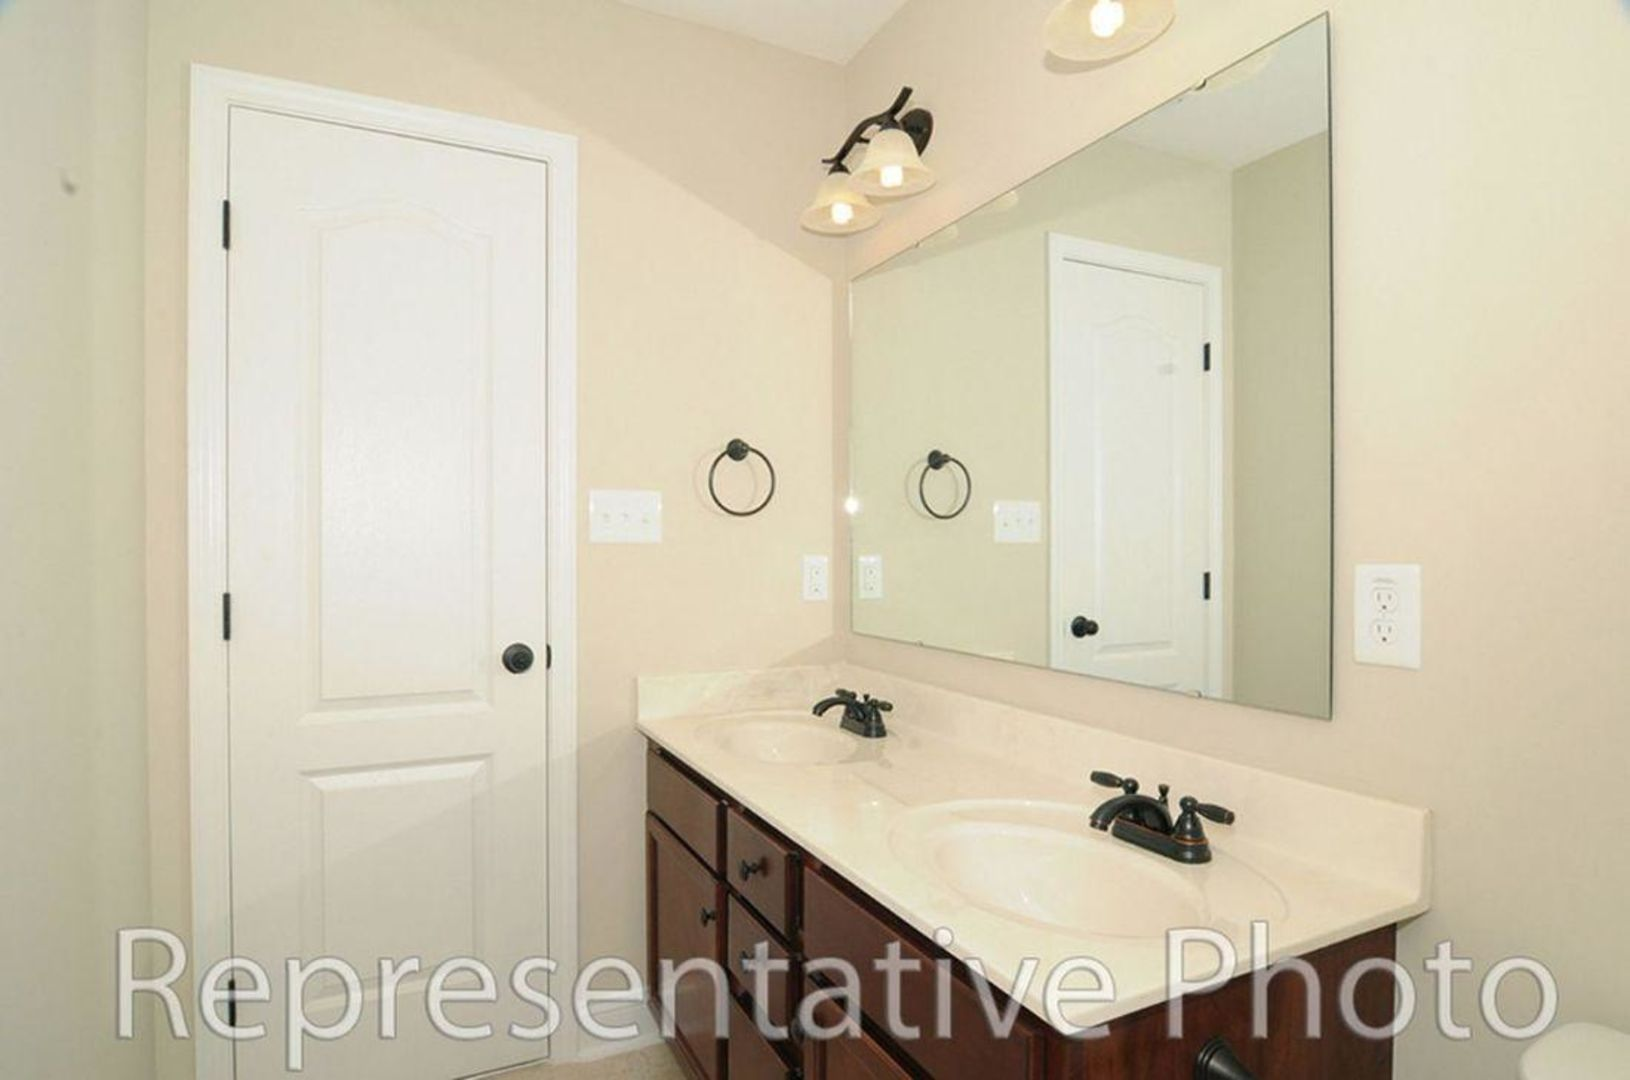 Bathroom featured in the Kent By HH Homes in Fayetteville, NC